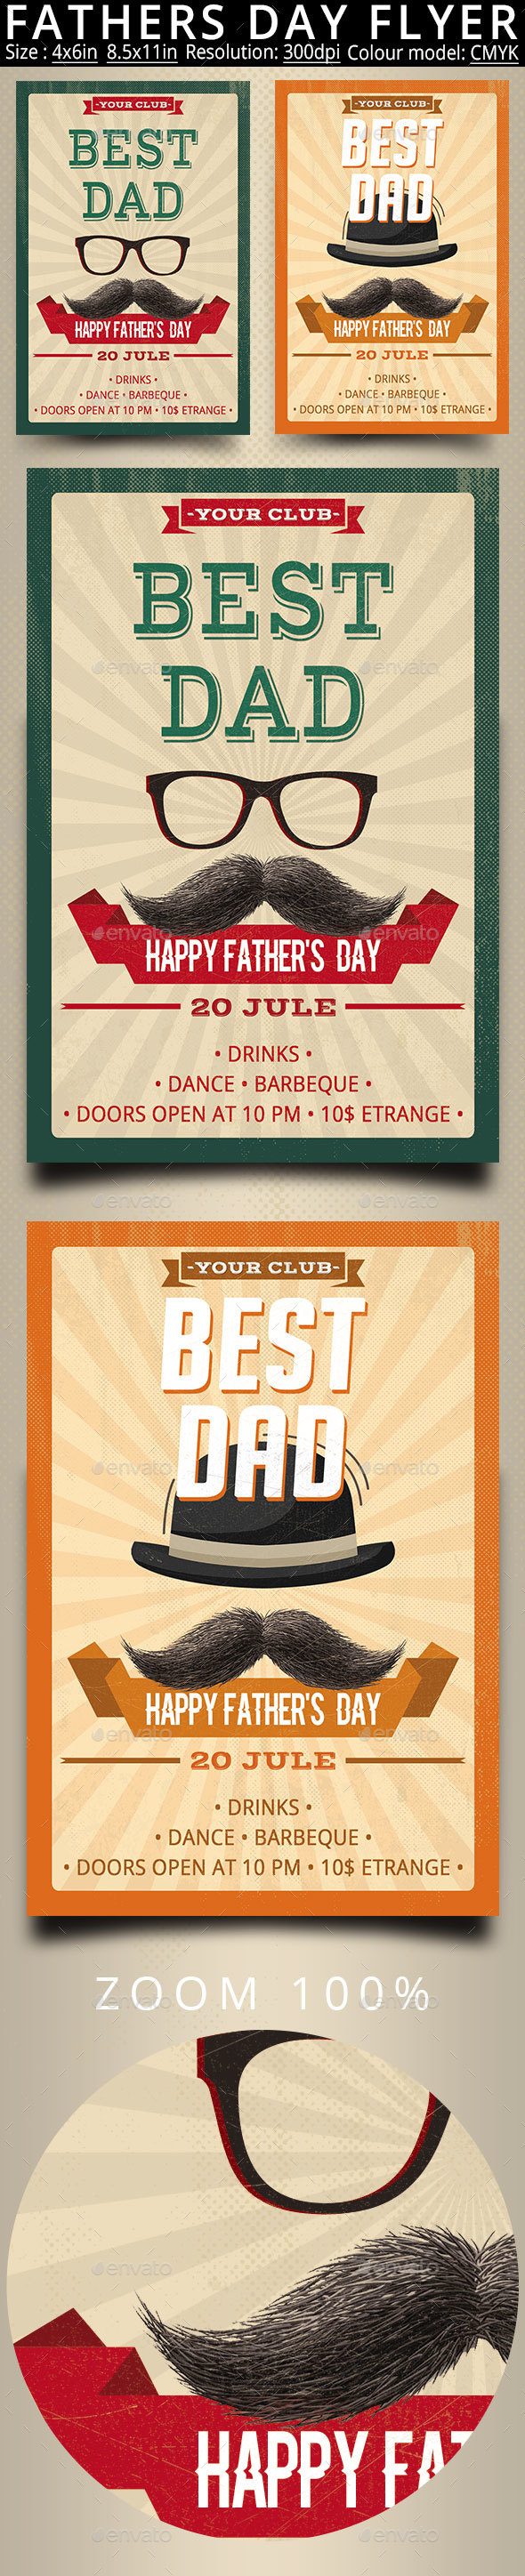 Fathers Day Best Dad Flyer And Poster - Events Flyers